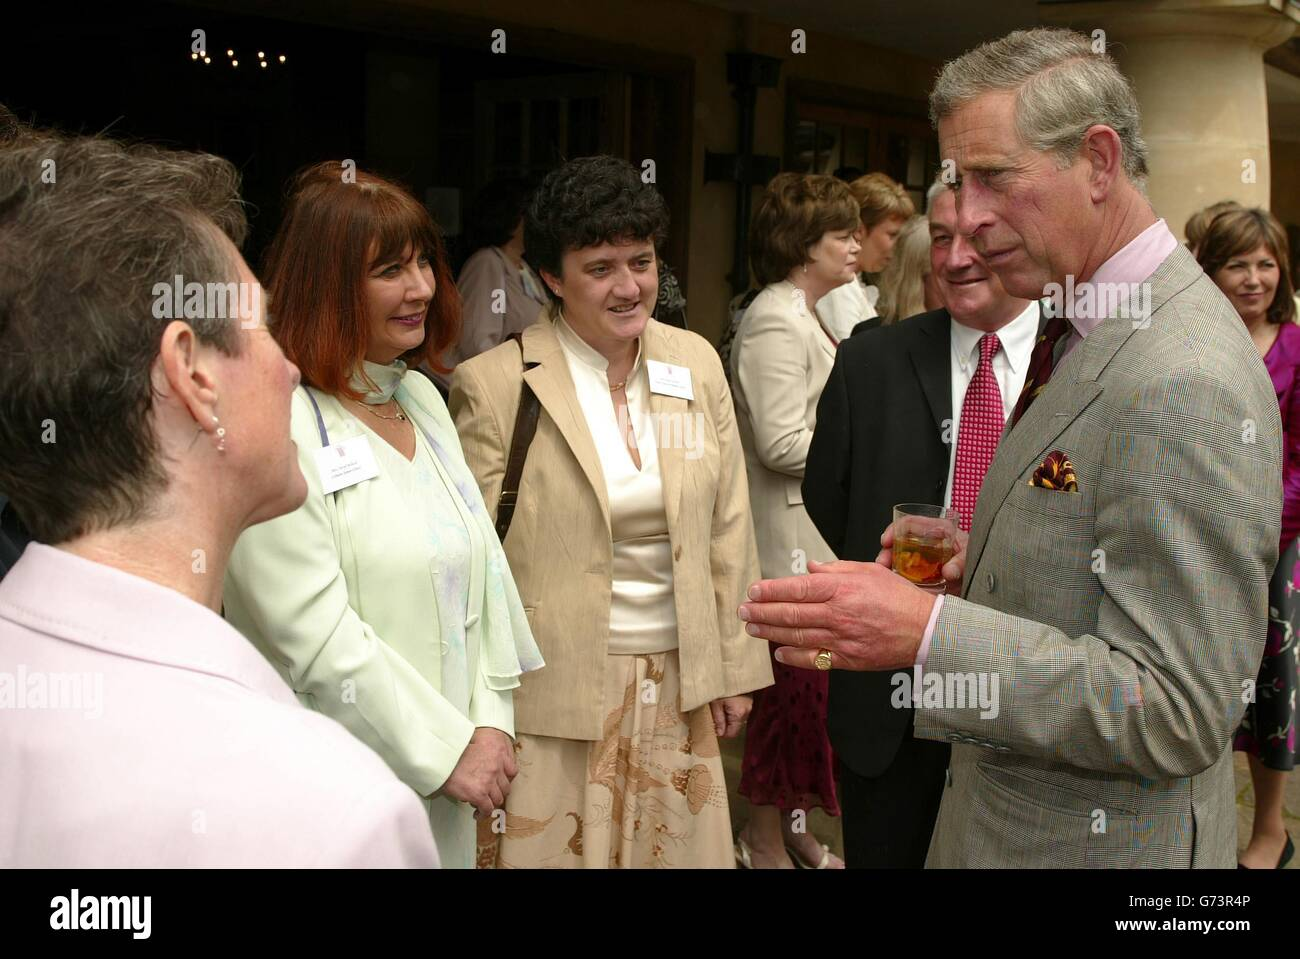 The Prince of Wales speaks to headteachers Stock Photo